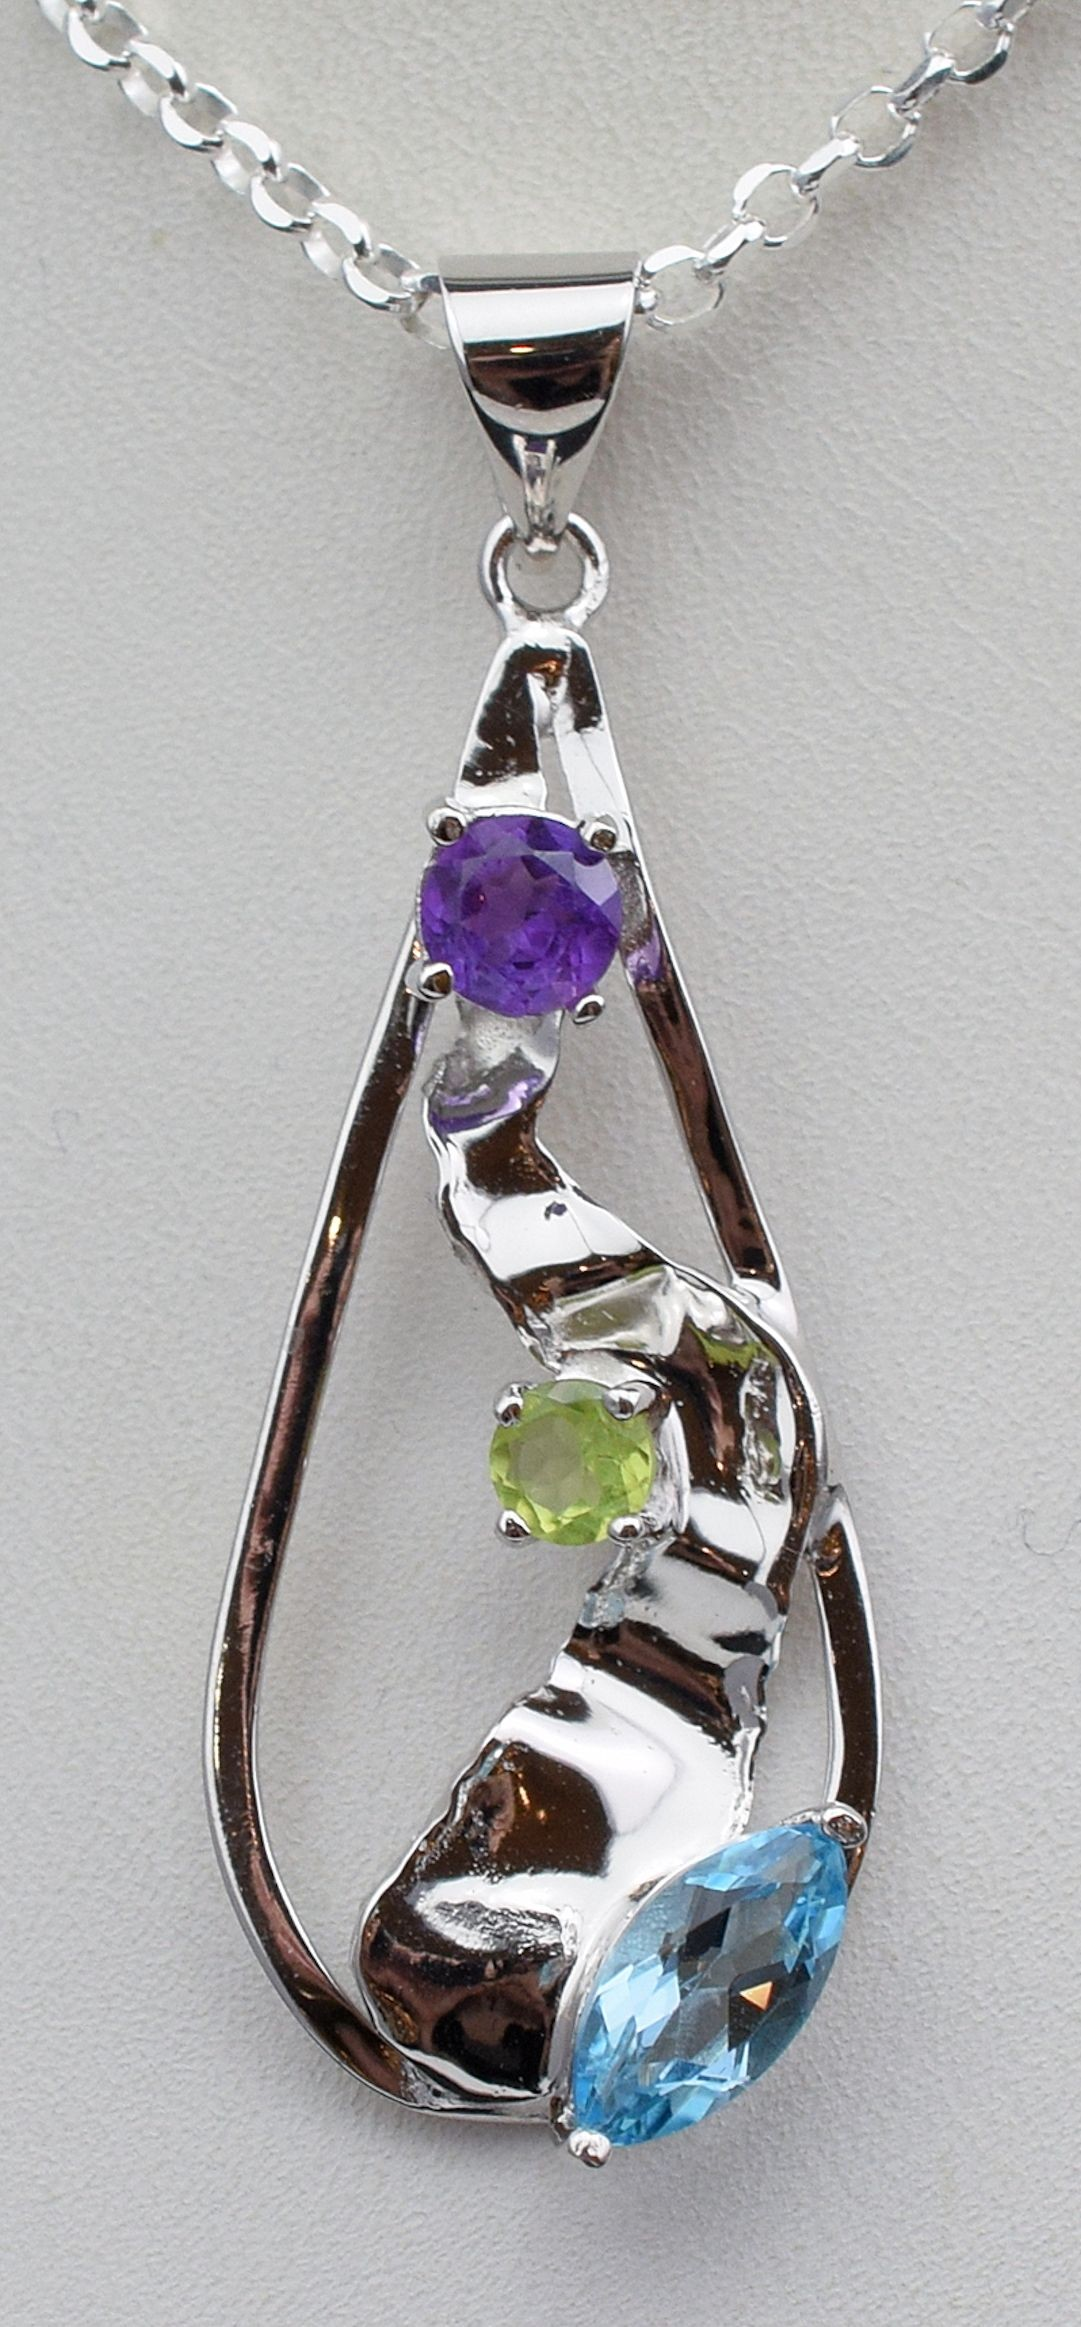 Pds 0597 Amethyst, Peridot and Blue Topaz Pendant in Sterling Silver.